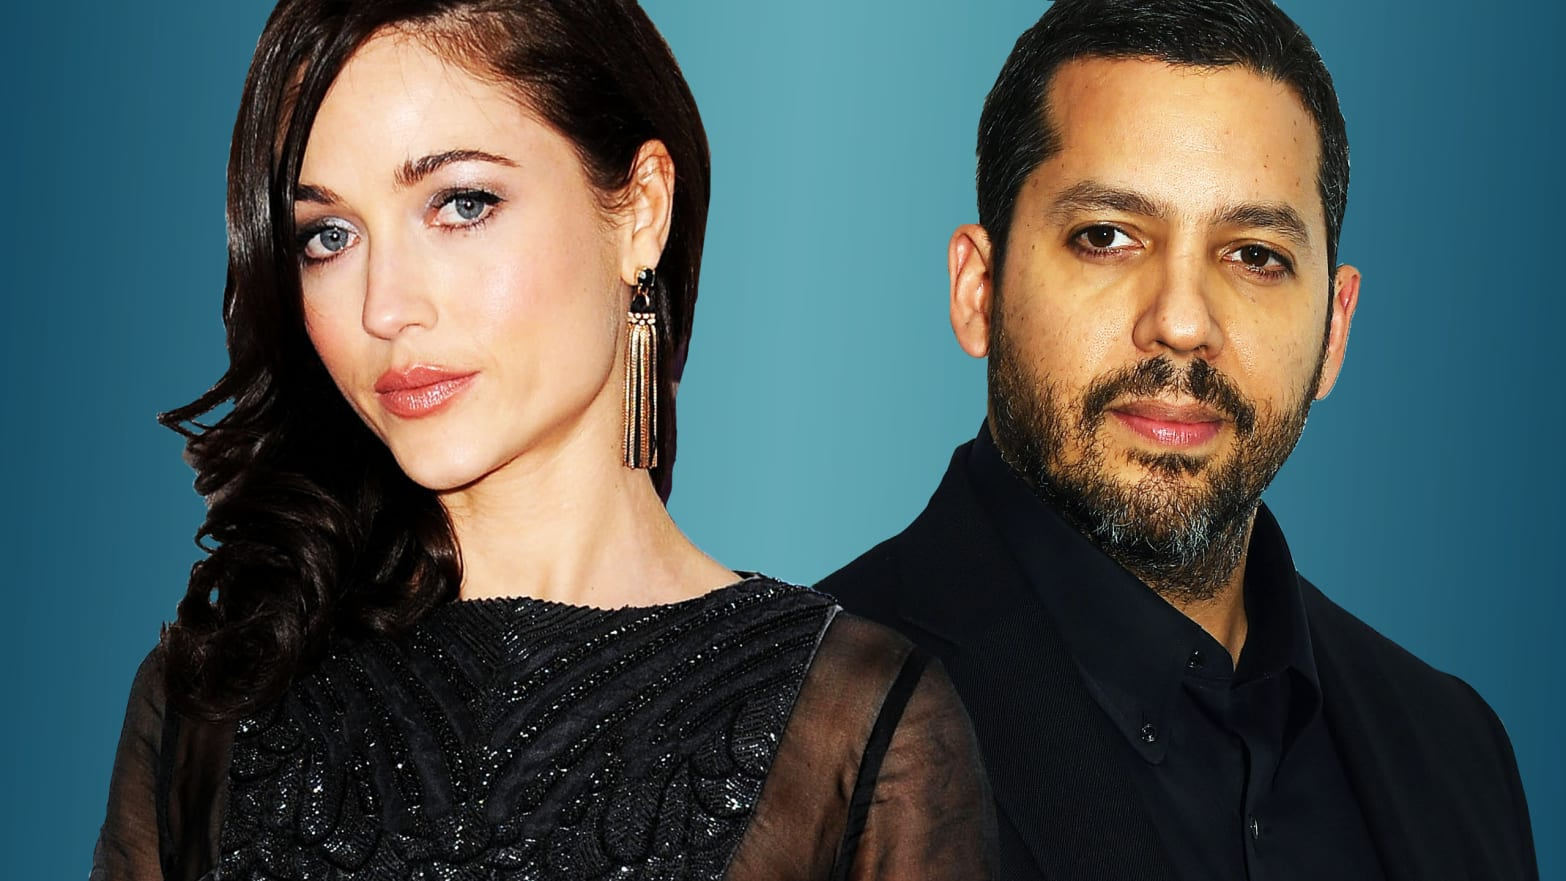 Anal Rapt exclusive: former model accuses david blaine of rape